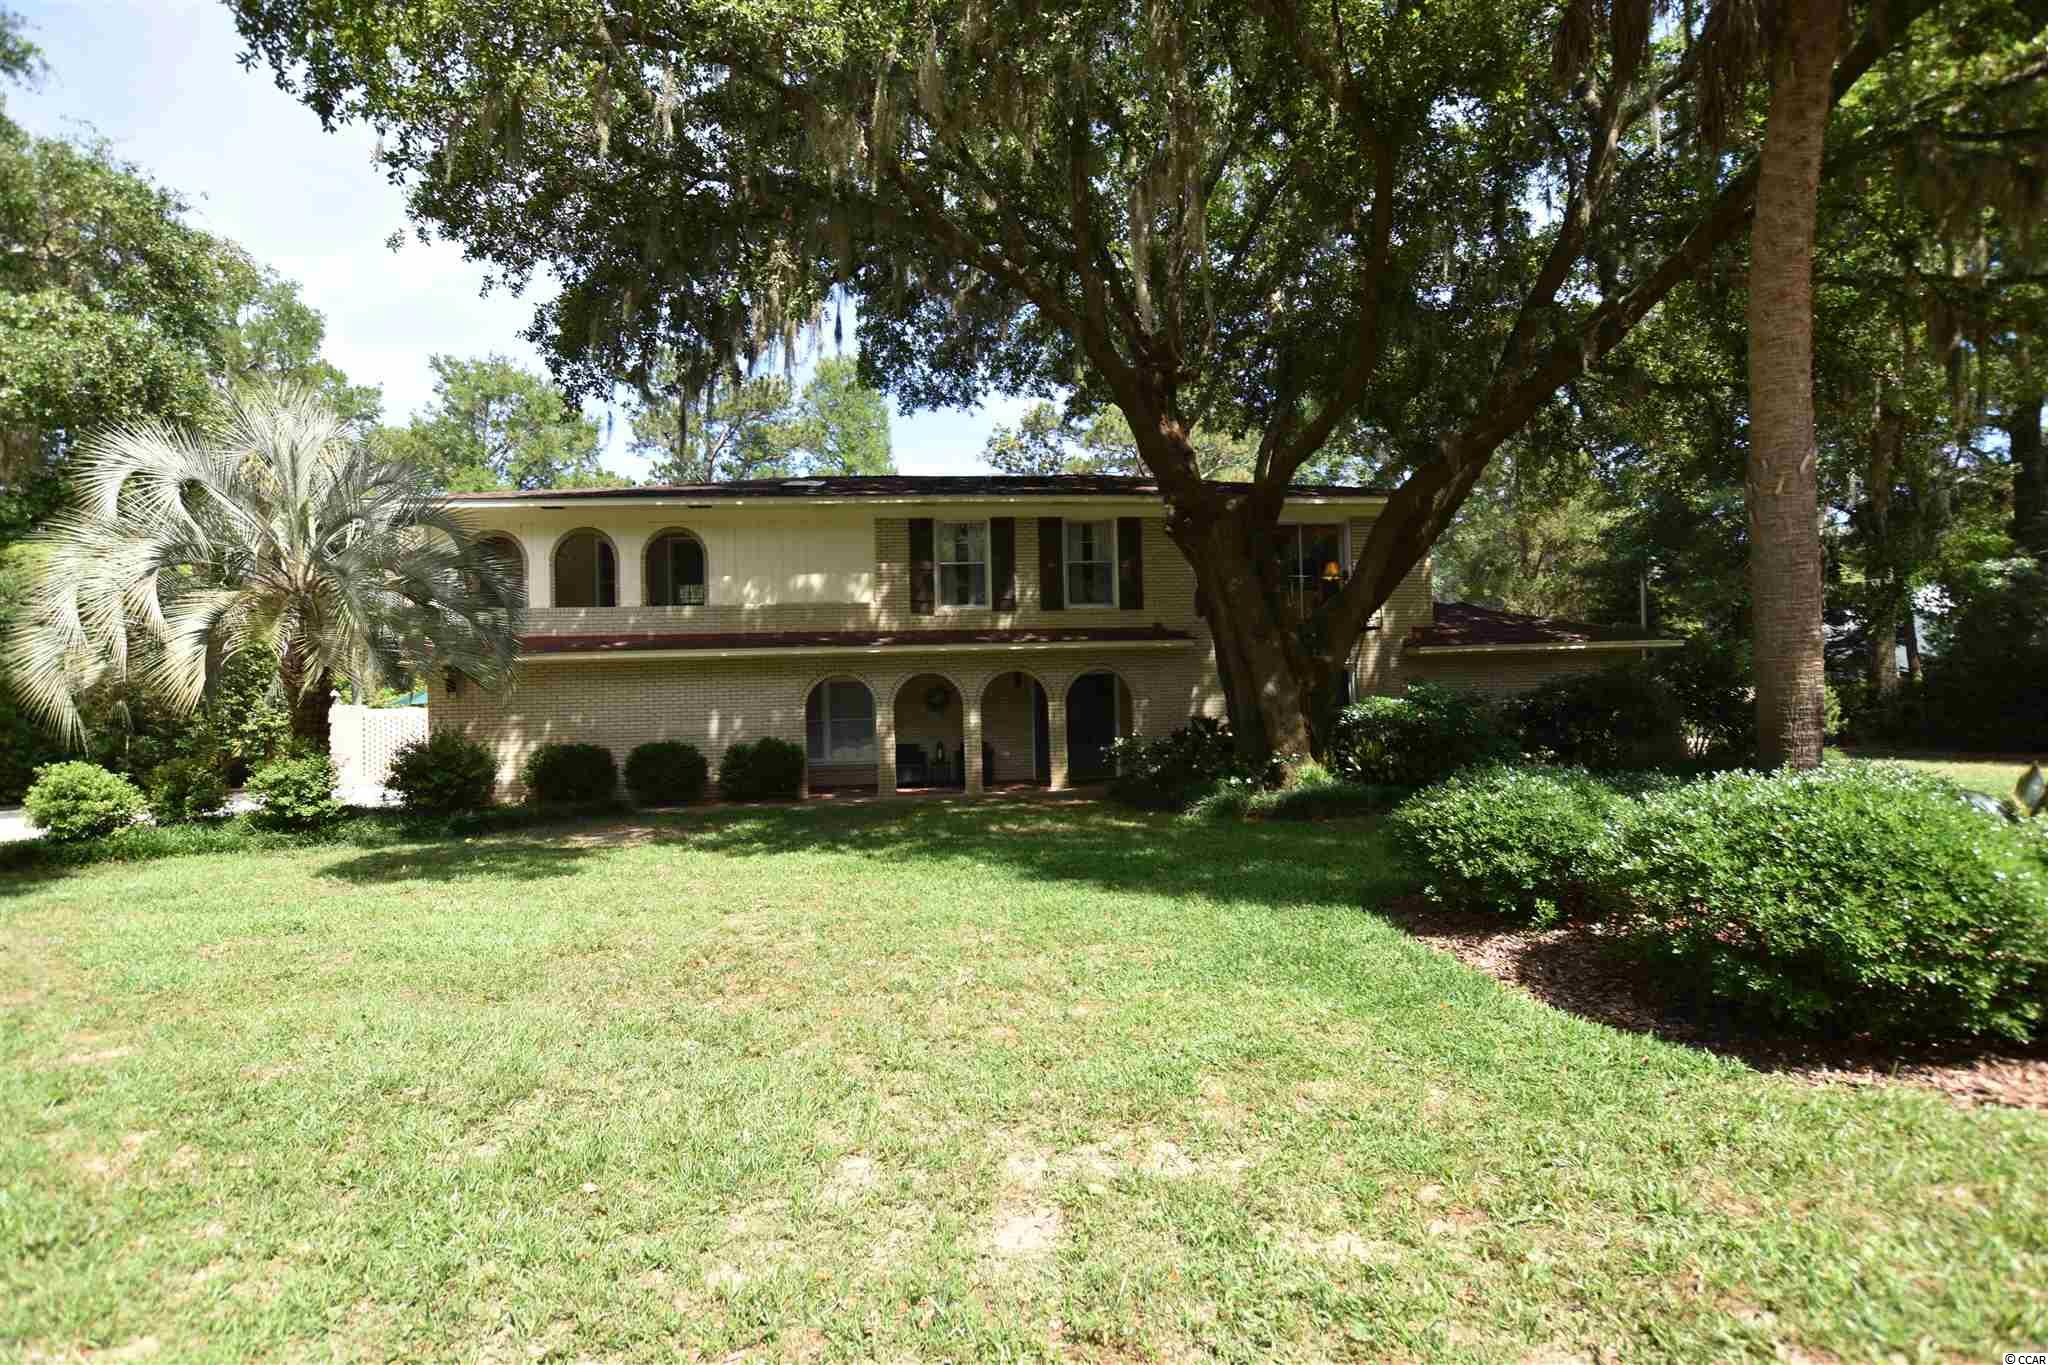 Incredibly unique opportunity to own on the water in Pawleys Island.  This delightful abode boasts a spanish style with a lowcountry twist you are bound to fall in love with. Immediately as you enter the stately front door you will feel as if you've found home. The spacious family room boasts soaring ceilings with an impressive two story fireplace. Lounging in the living area, you will also note calming views of the 8ft dep saltwater pool, mature palms and live oak trees. A 14' x 16' patio off the porch outside the Carolina room offers a propane gas fire pit and walkway to the waterfront deck area with floating dock.  Enjoy direct access to the Waccamaw river (intercostal waterway) from your back yard! The deck/dock area houses full electric power and lights. -- There is no mandatory HOA in Hagley Estates so you are free to store your RV or Boat on the property.